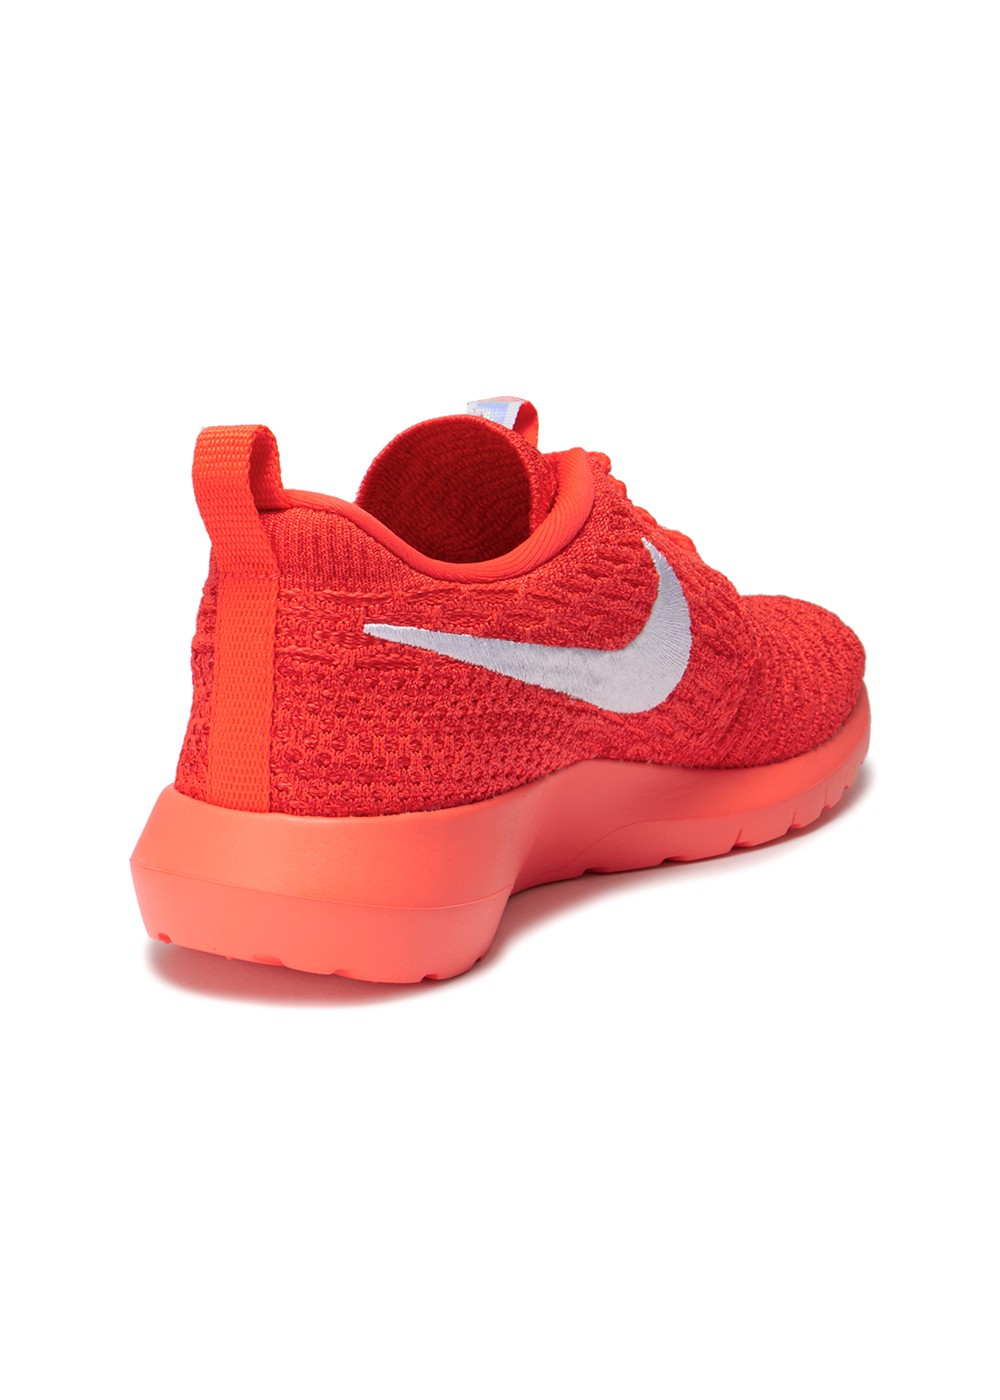 WMNS ROSHE NM FLYKNIT 843386-604【NIKE】|ORANGE|スニーカー|Styles